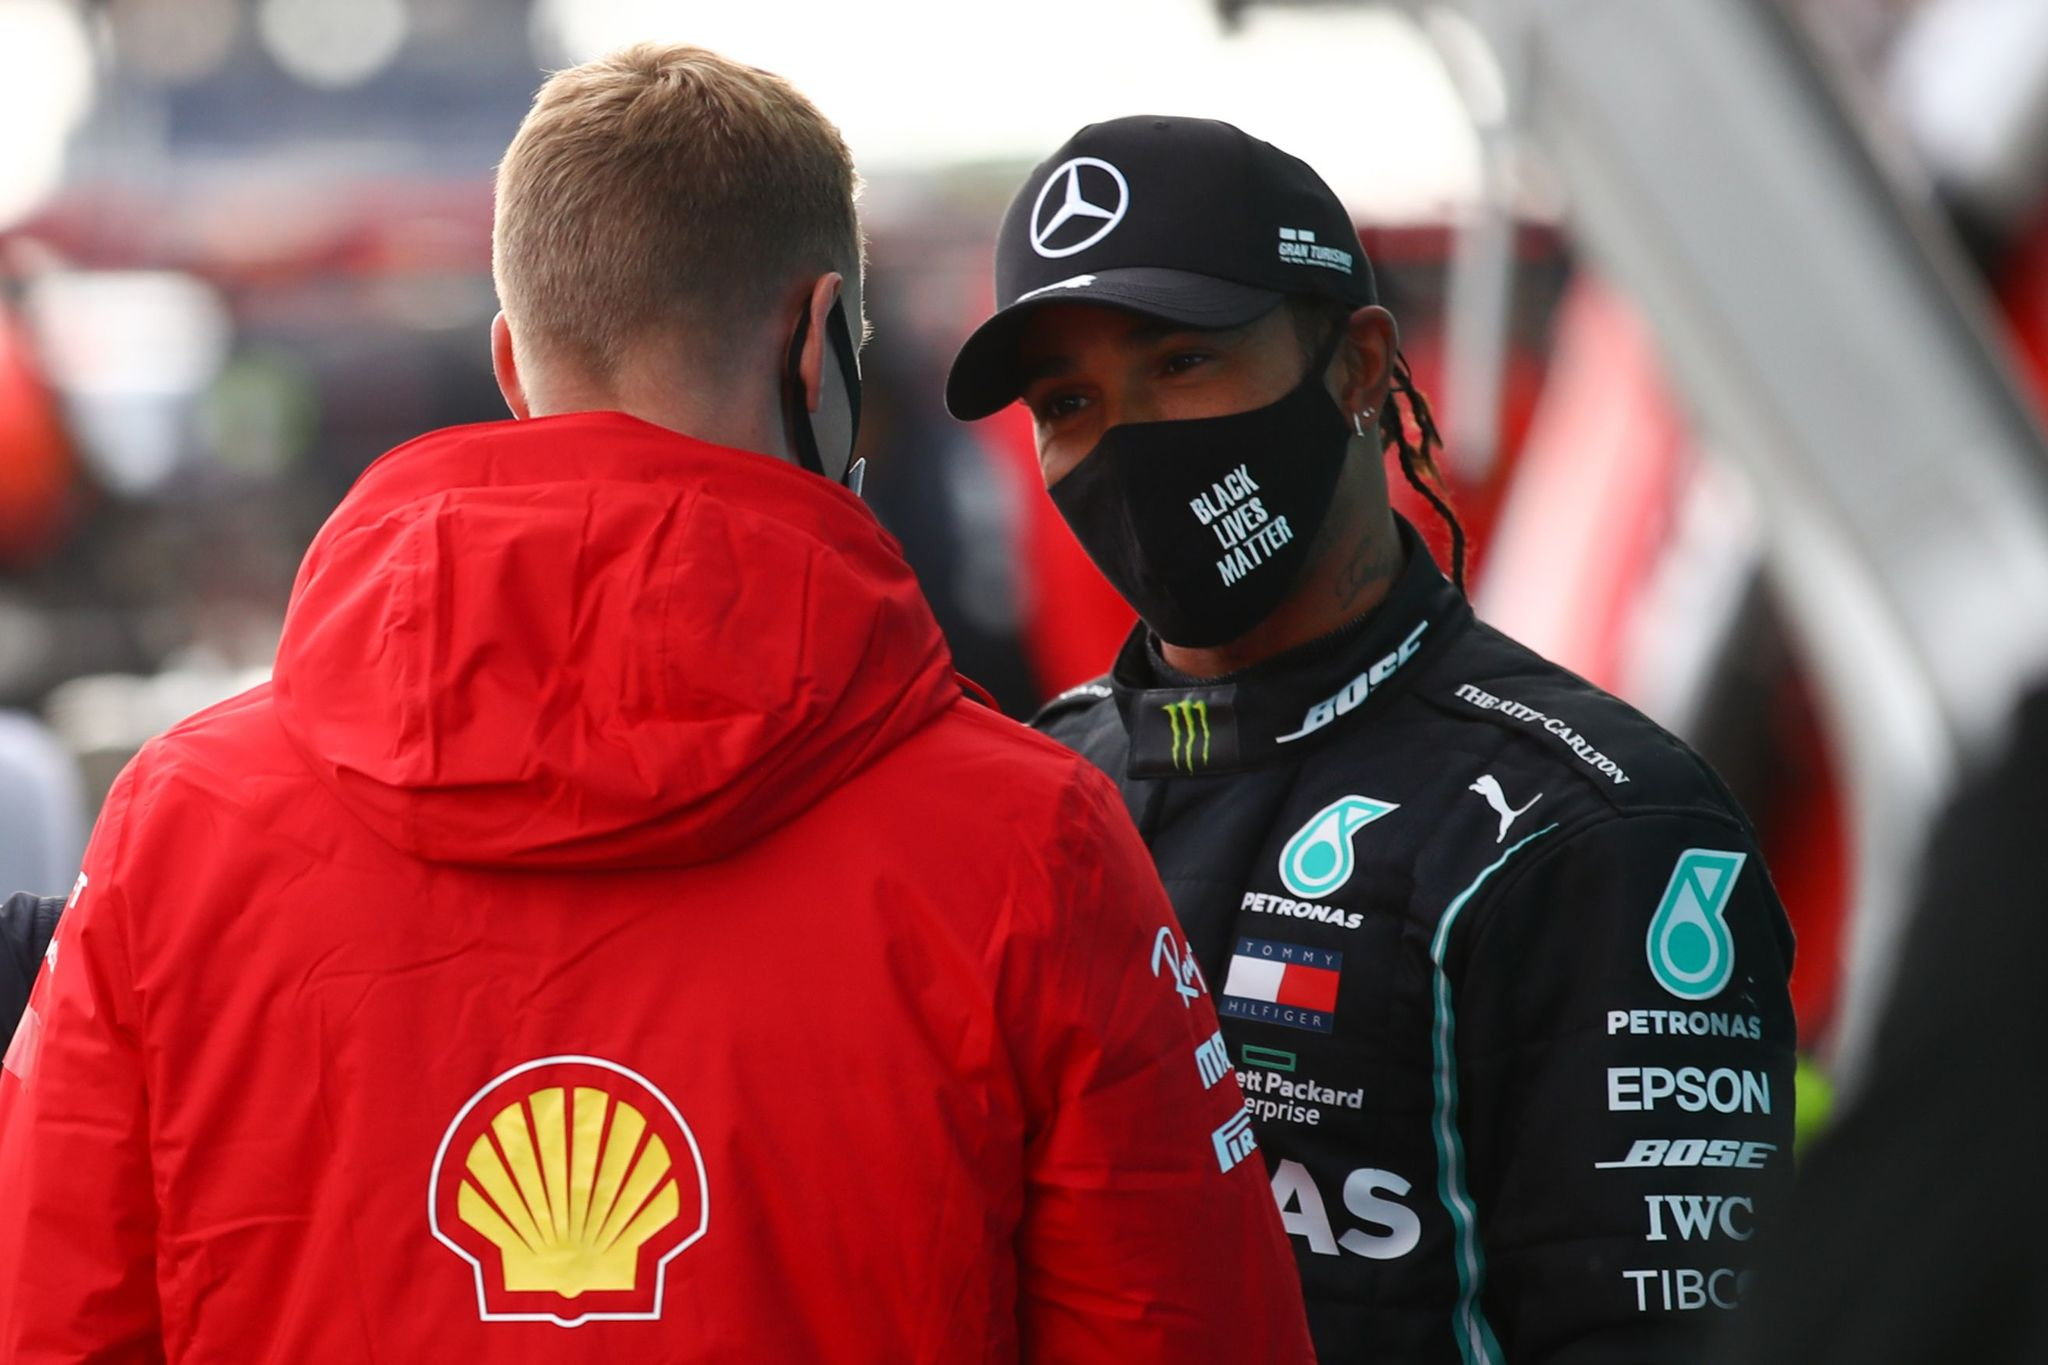 Alfa Romeos German driver Mick lt;HIT gt;Schumacher lt;/HIT gt; (L) talks to winner Mercedes British driver Lewis Hamilton after the German Formula One Eifel Grand Prix at the Nuerburgring circuit in Nuerburg, western Germany, on October 11, 2020. (Photo by Bryn Lennon / POOL / AFP)